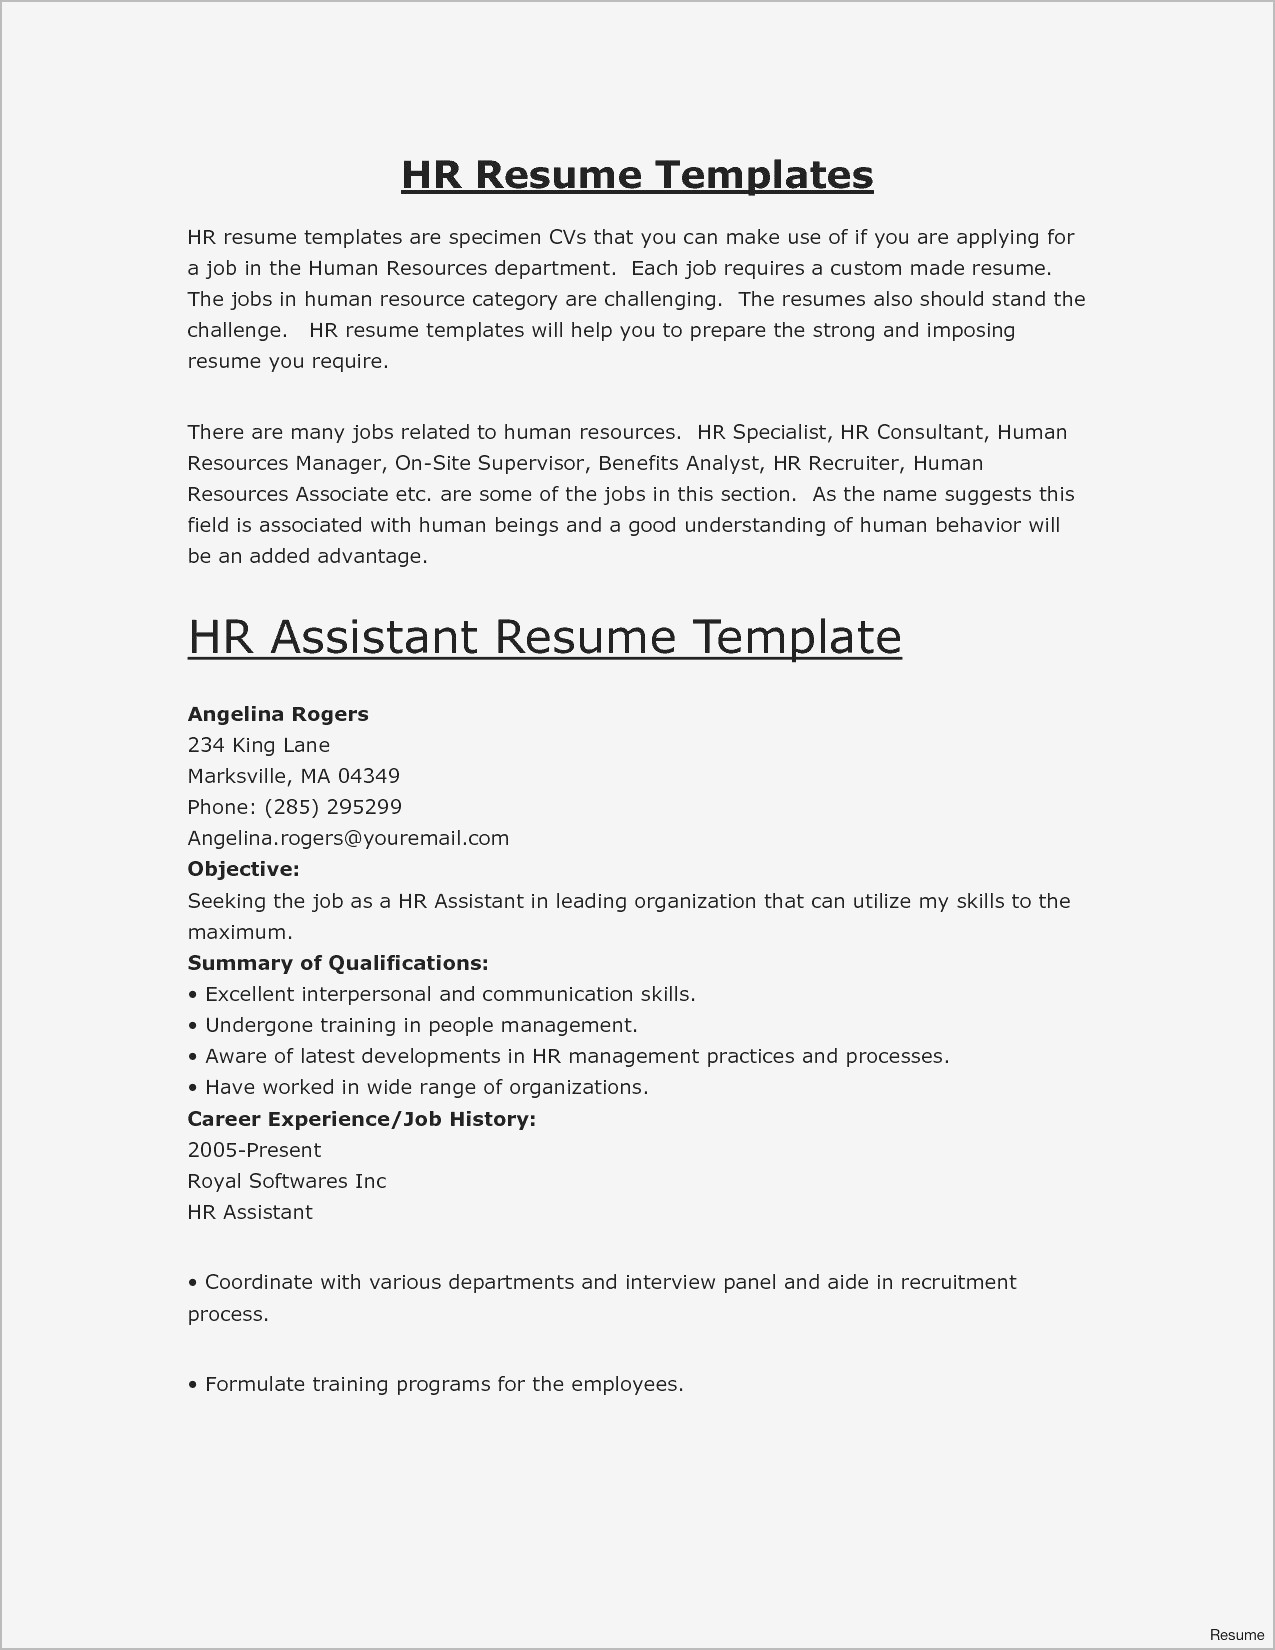 Free Stylish Resume Templates - Job Resume Templates Awesome Good Resume Template Free Stylish